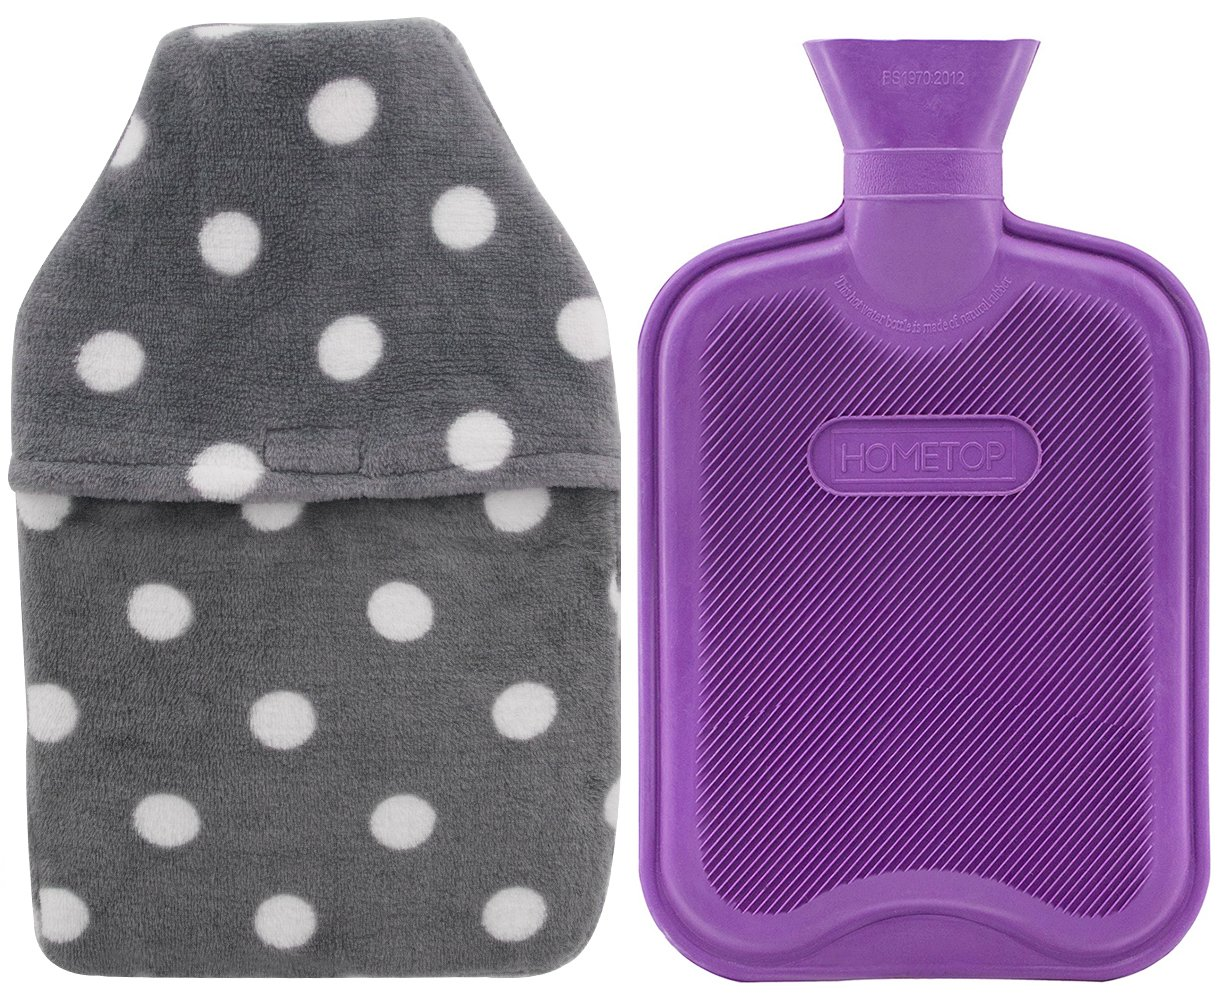 HomeTop Premium Classic Rubber Hot or Cold Water Bottle with Soft Fleece Cover (2 Liters, Purple/Gray Polka Dot Envelope Cover) by HomeTop